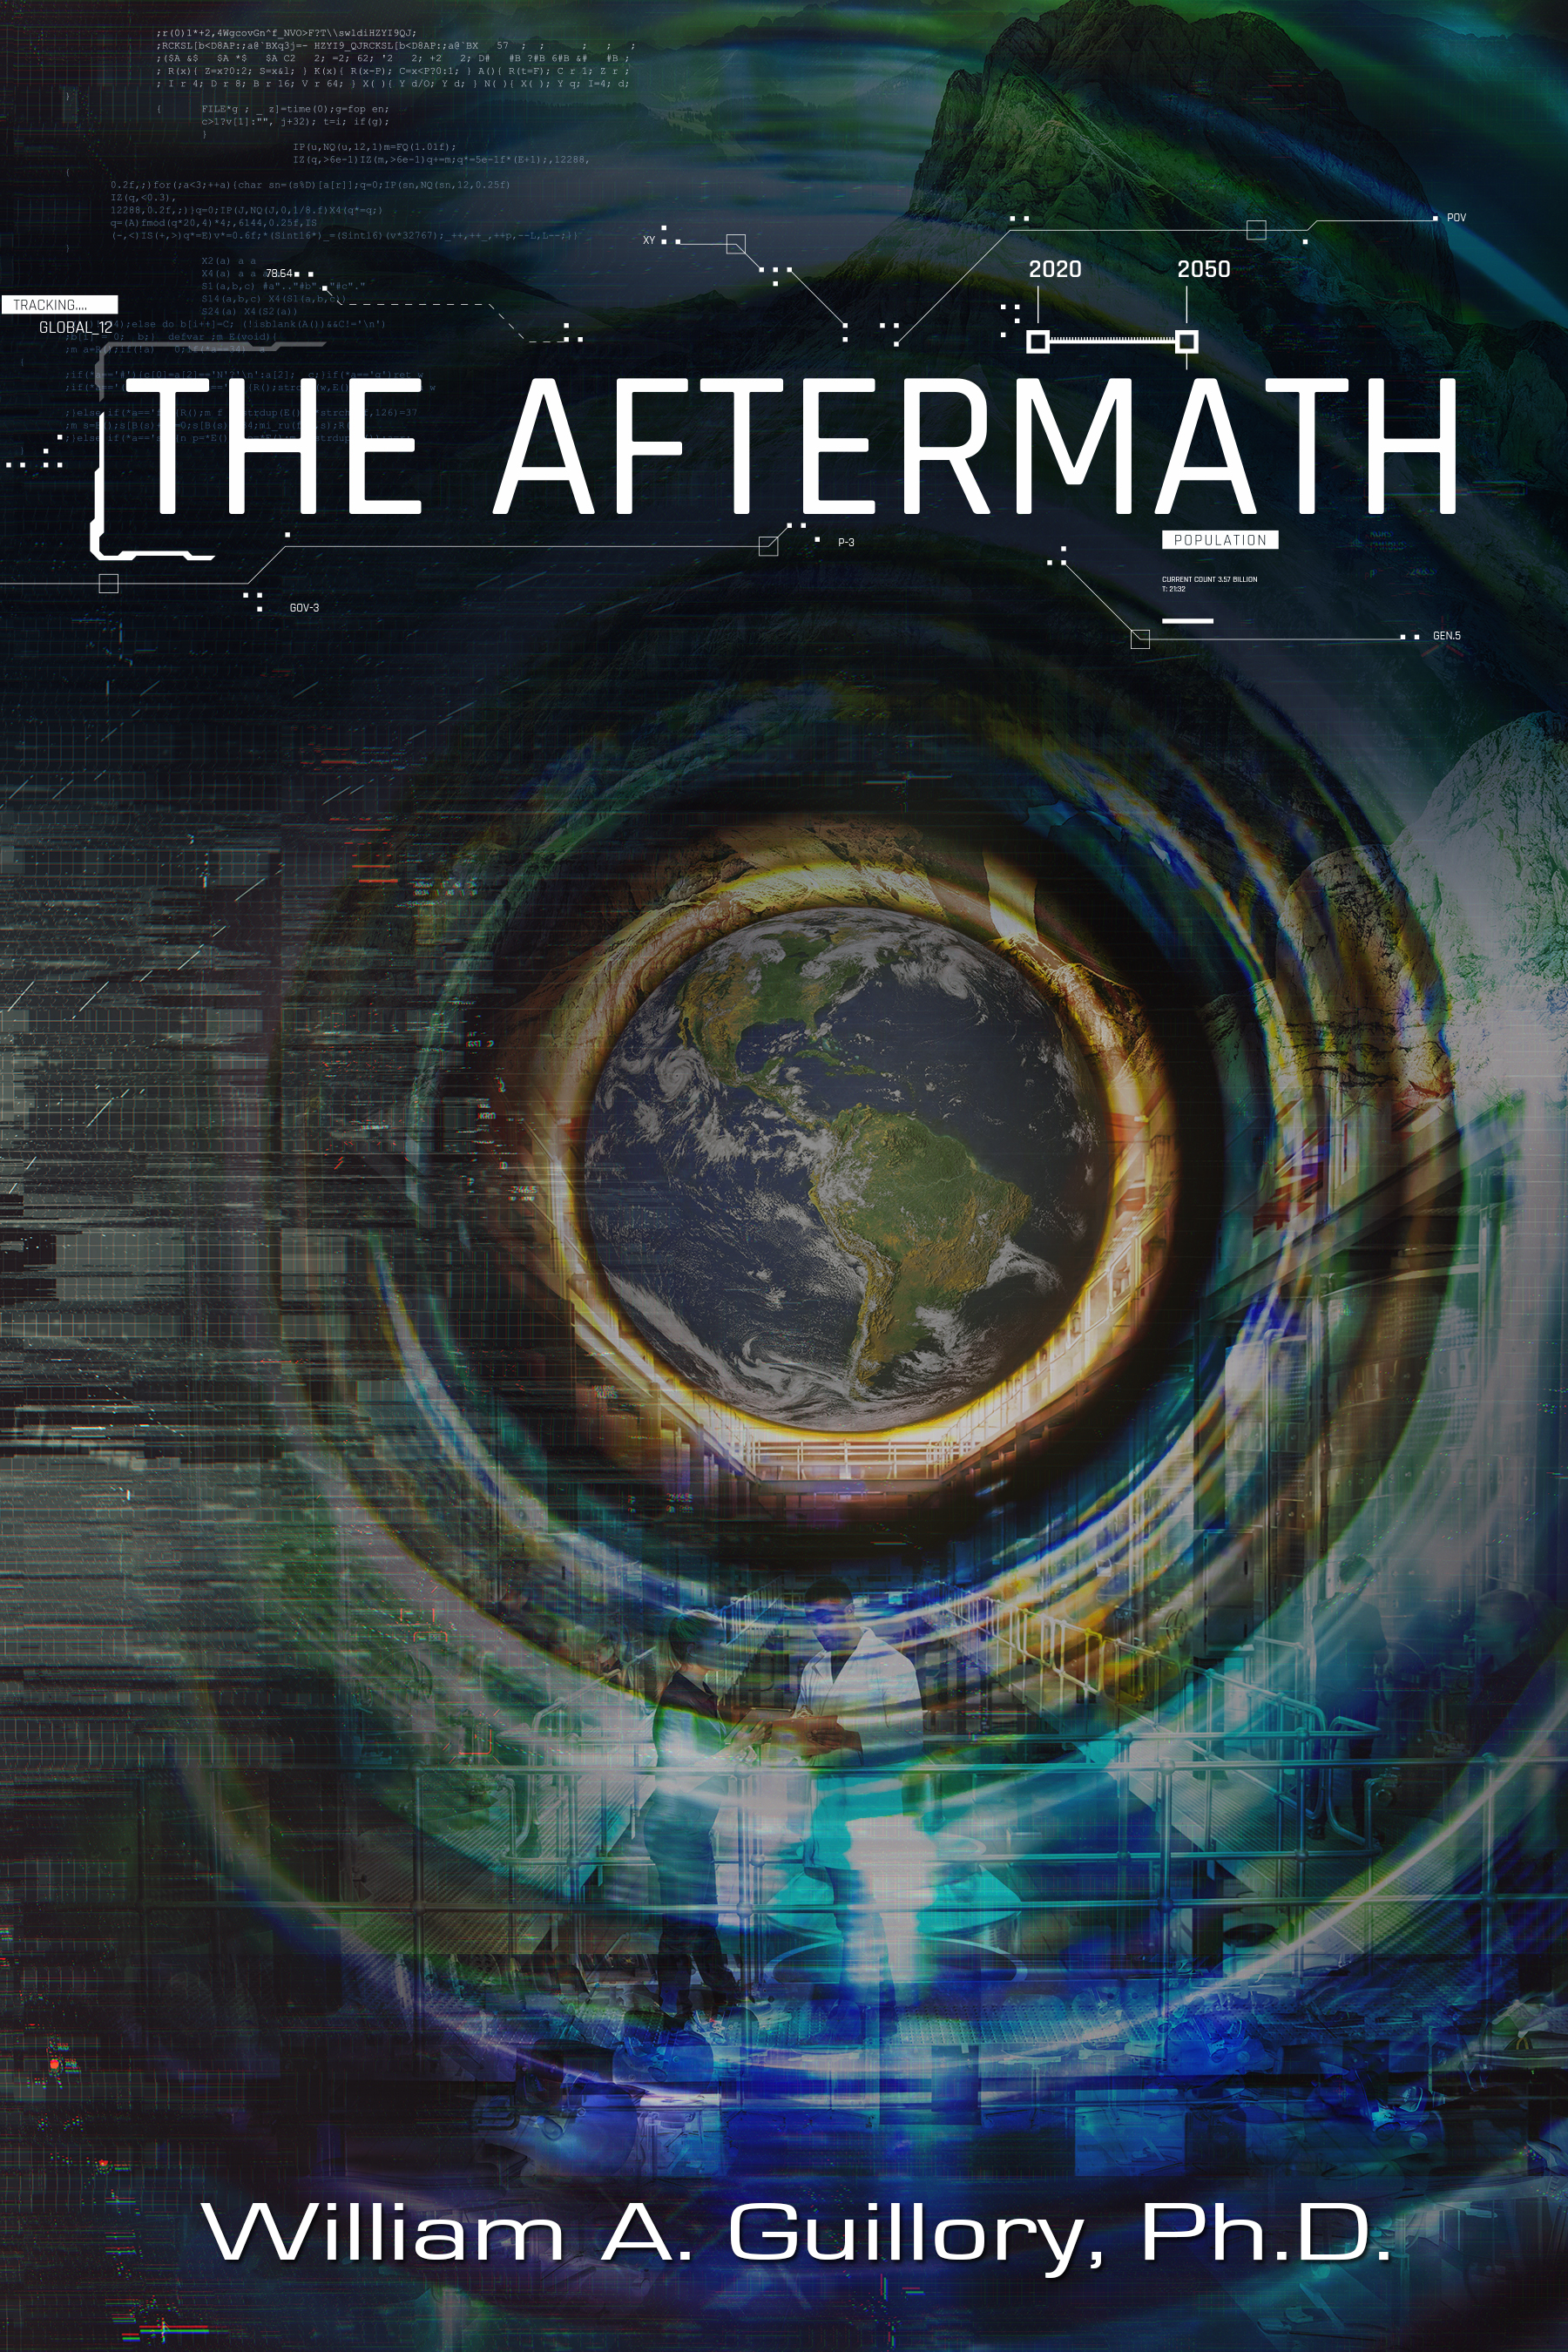 The_Aftermath_font_only